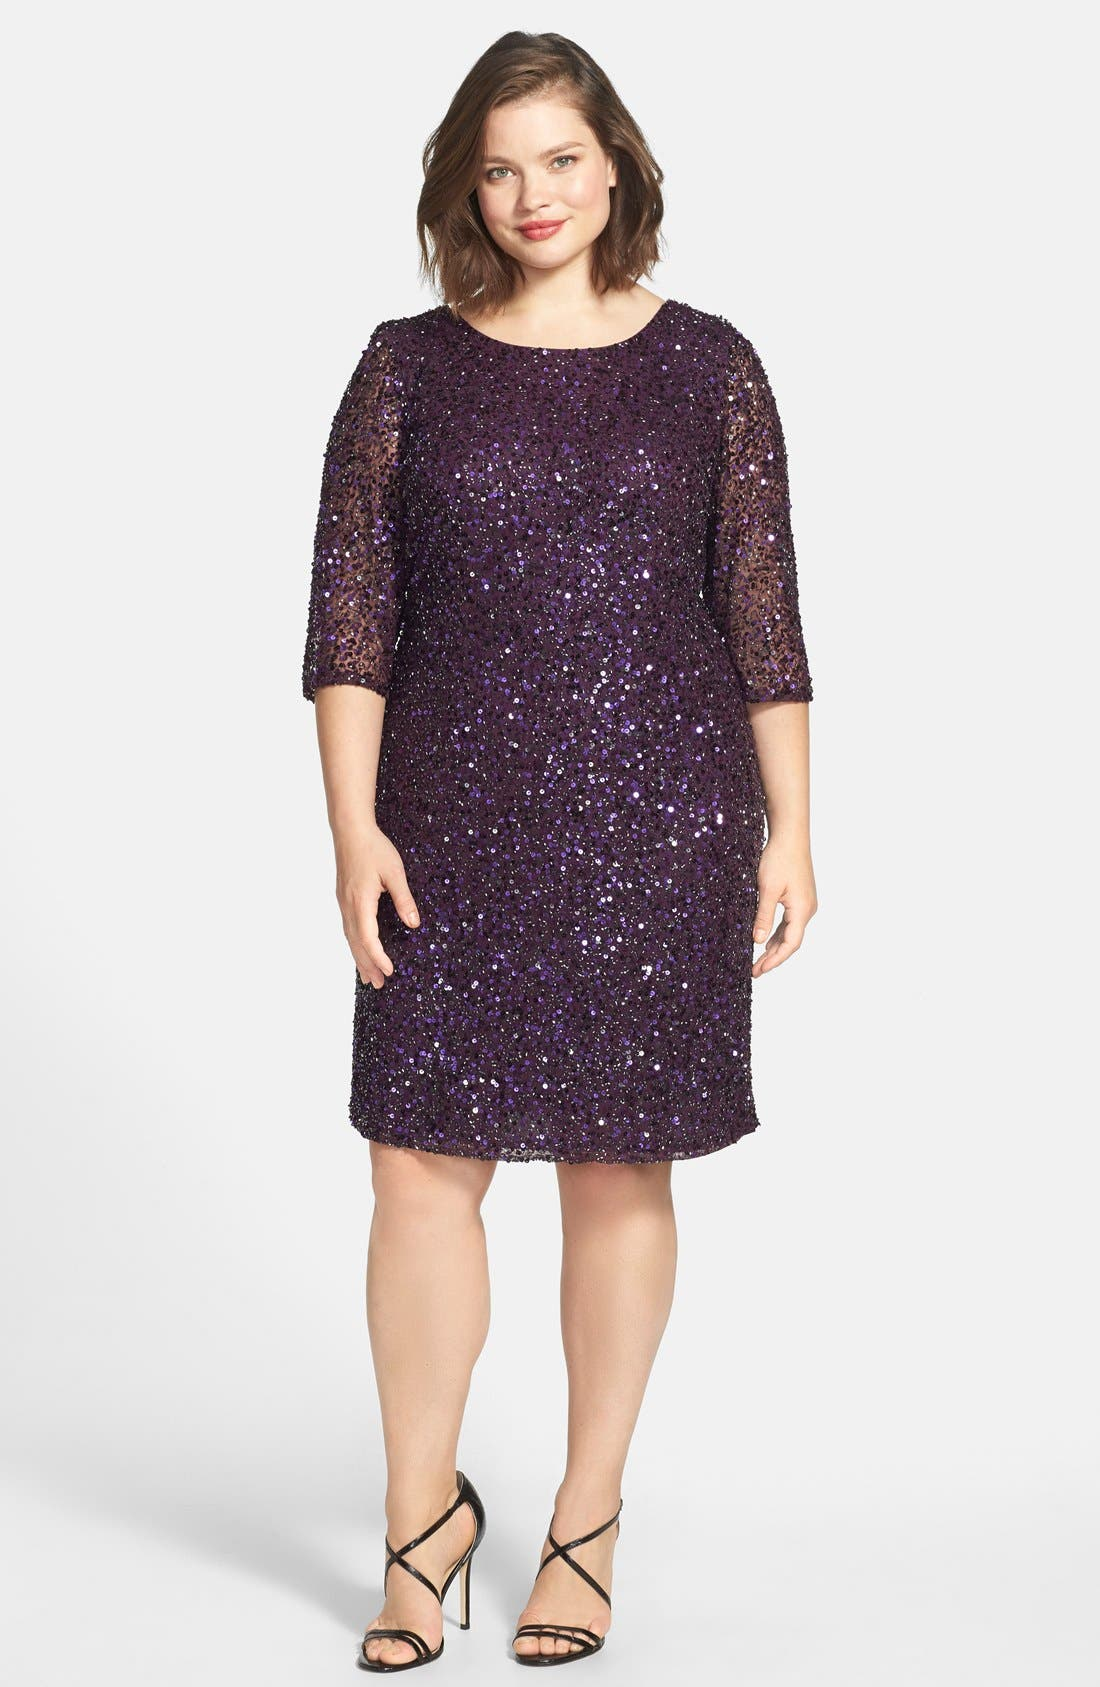 Cocktail & Party Plus-Size Dresses | Nordstrom